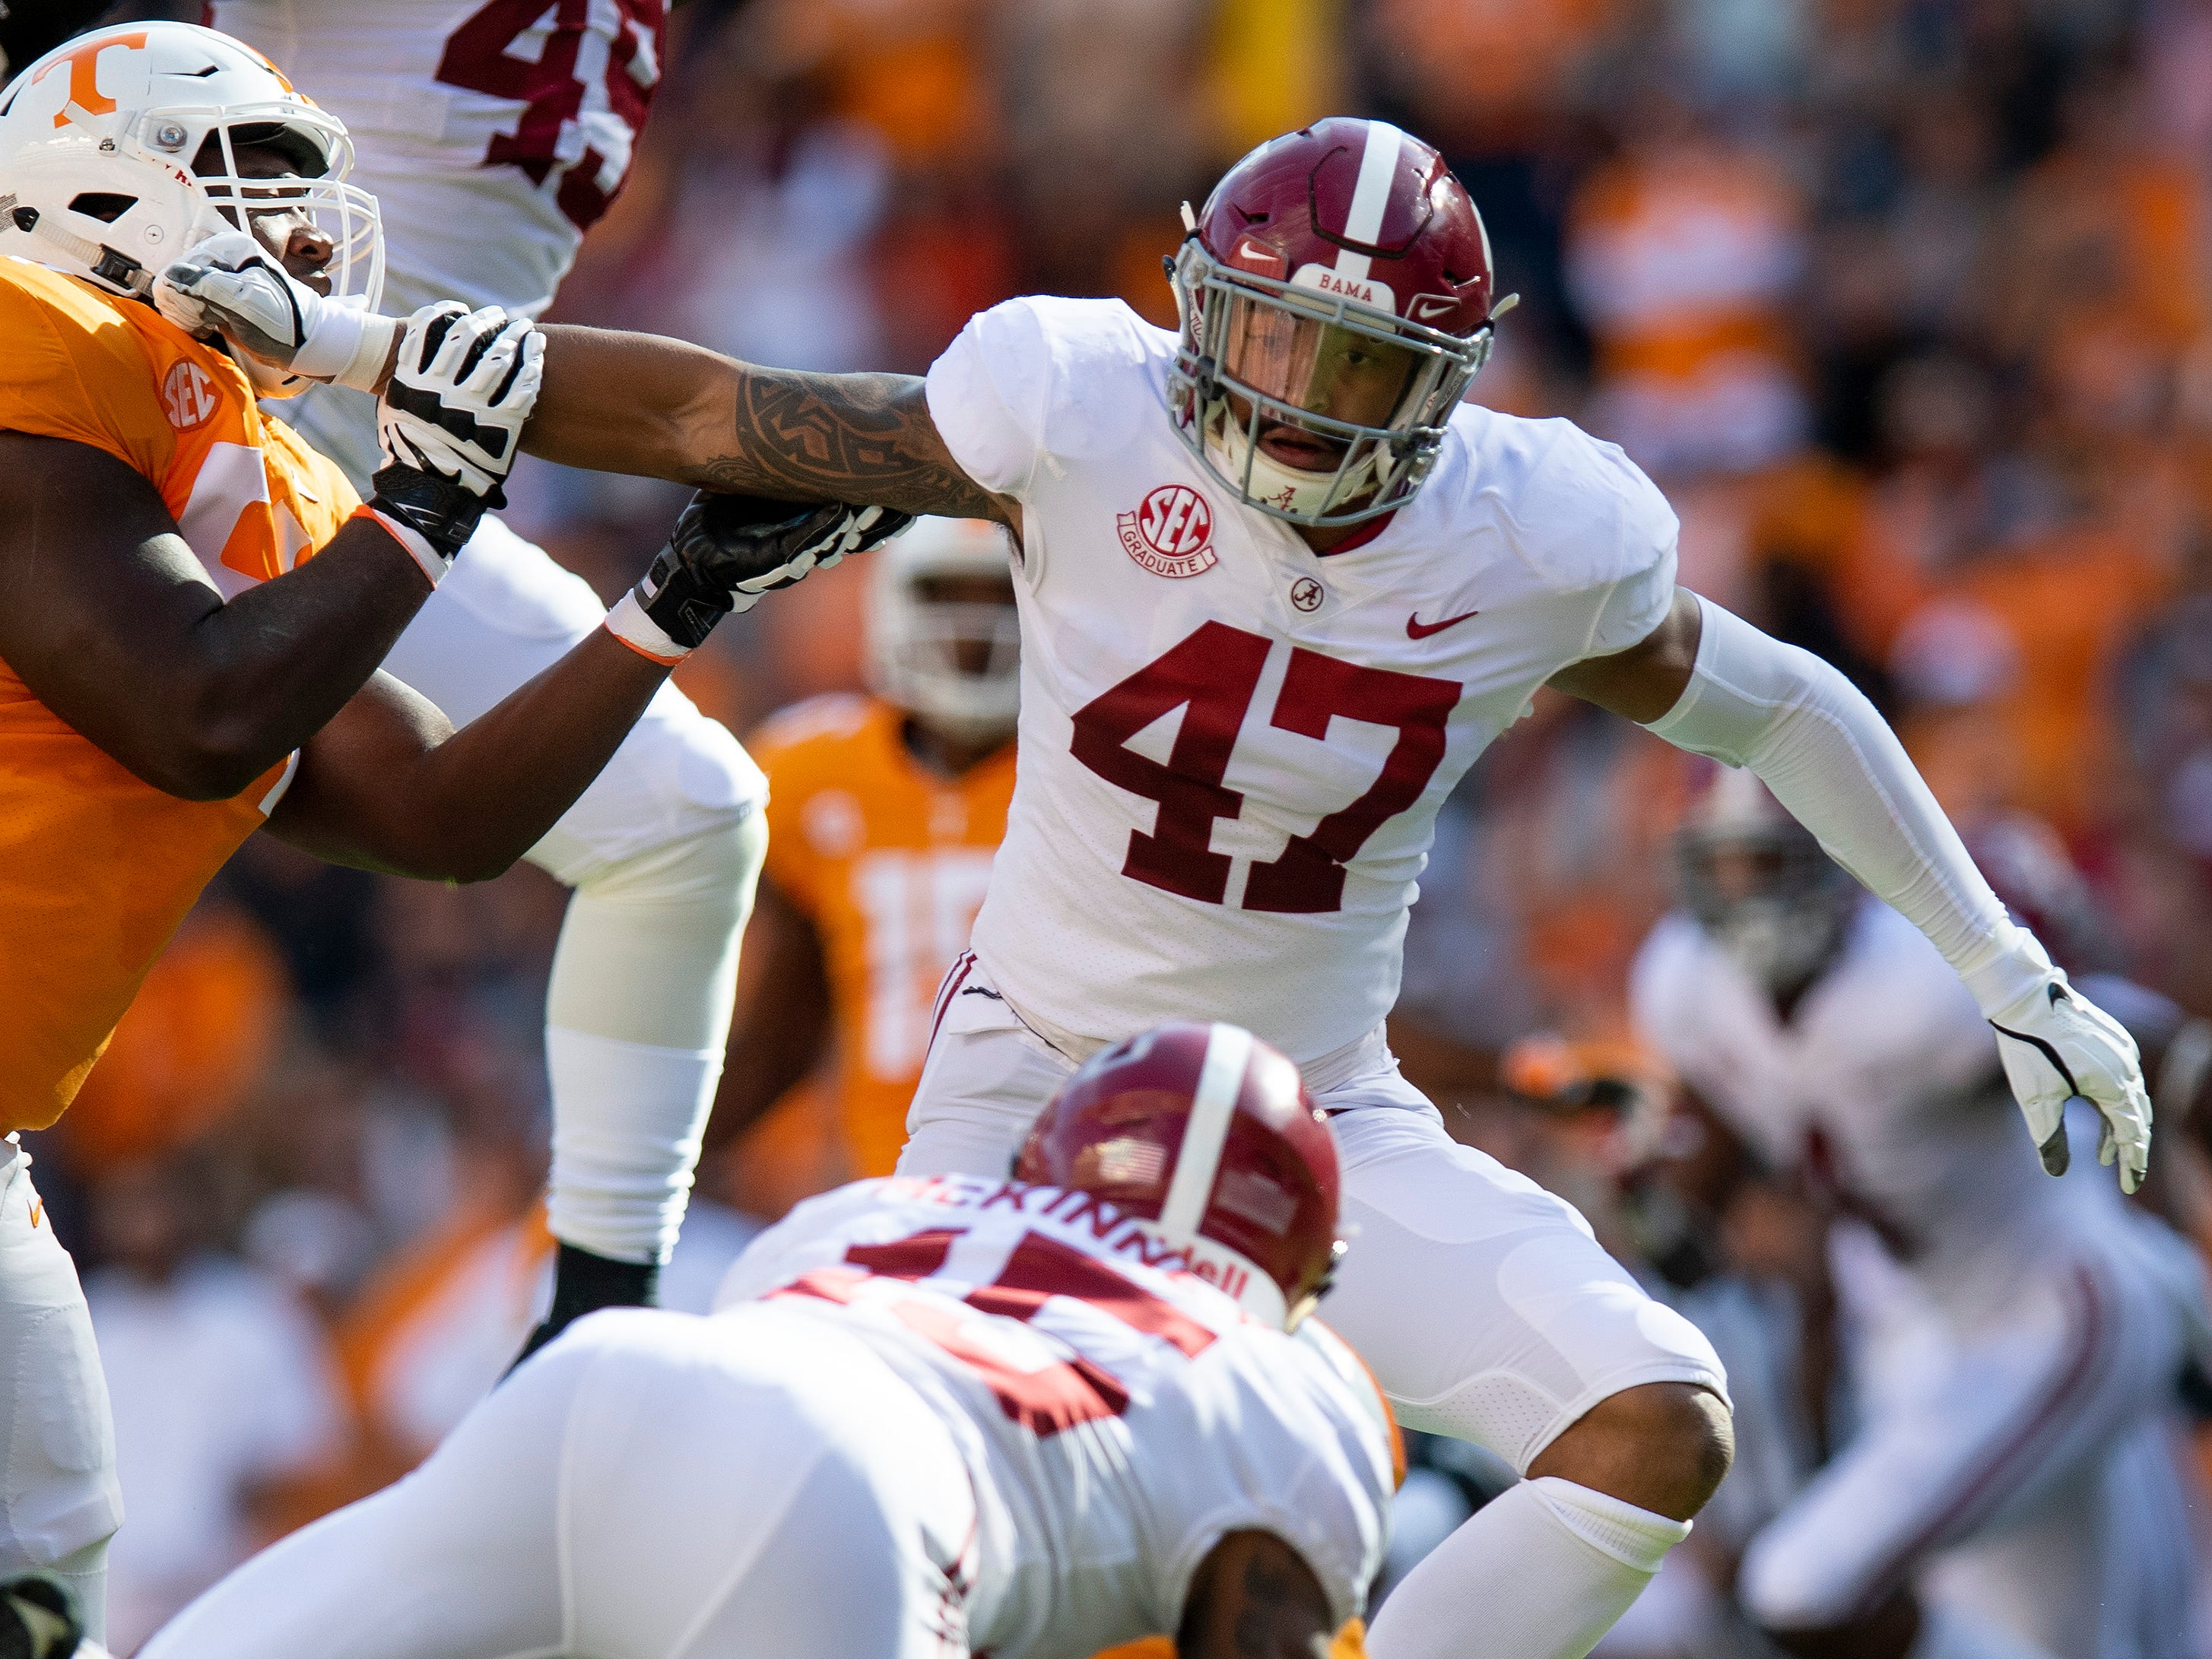 Alabama linebacker Christian Miller (47) in first half action against Tennessee at Neyland Stadium in Knoxville, Tn., on Saturday October 20, 2018.